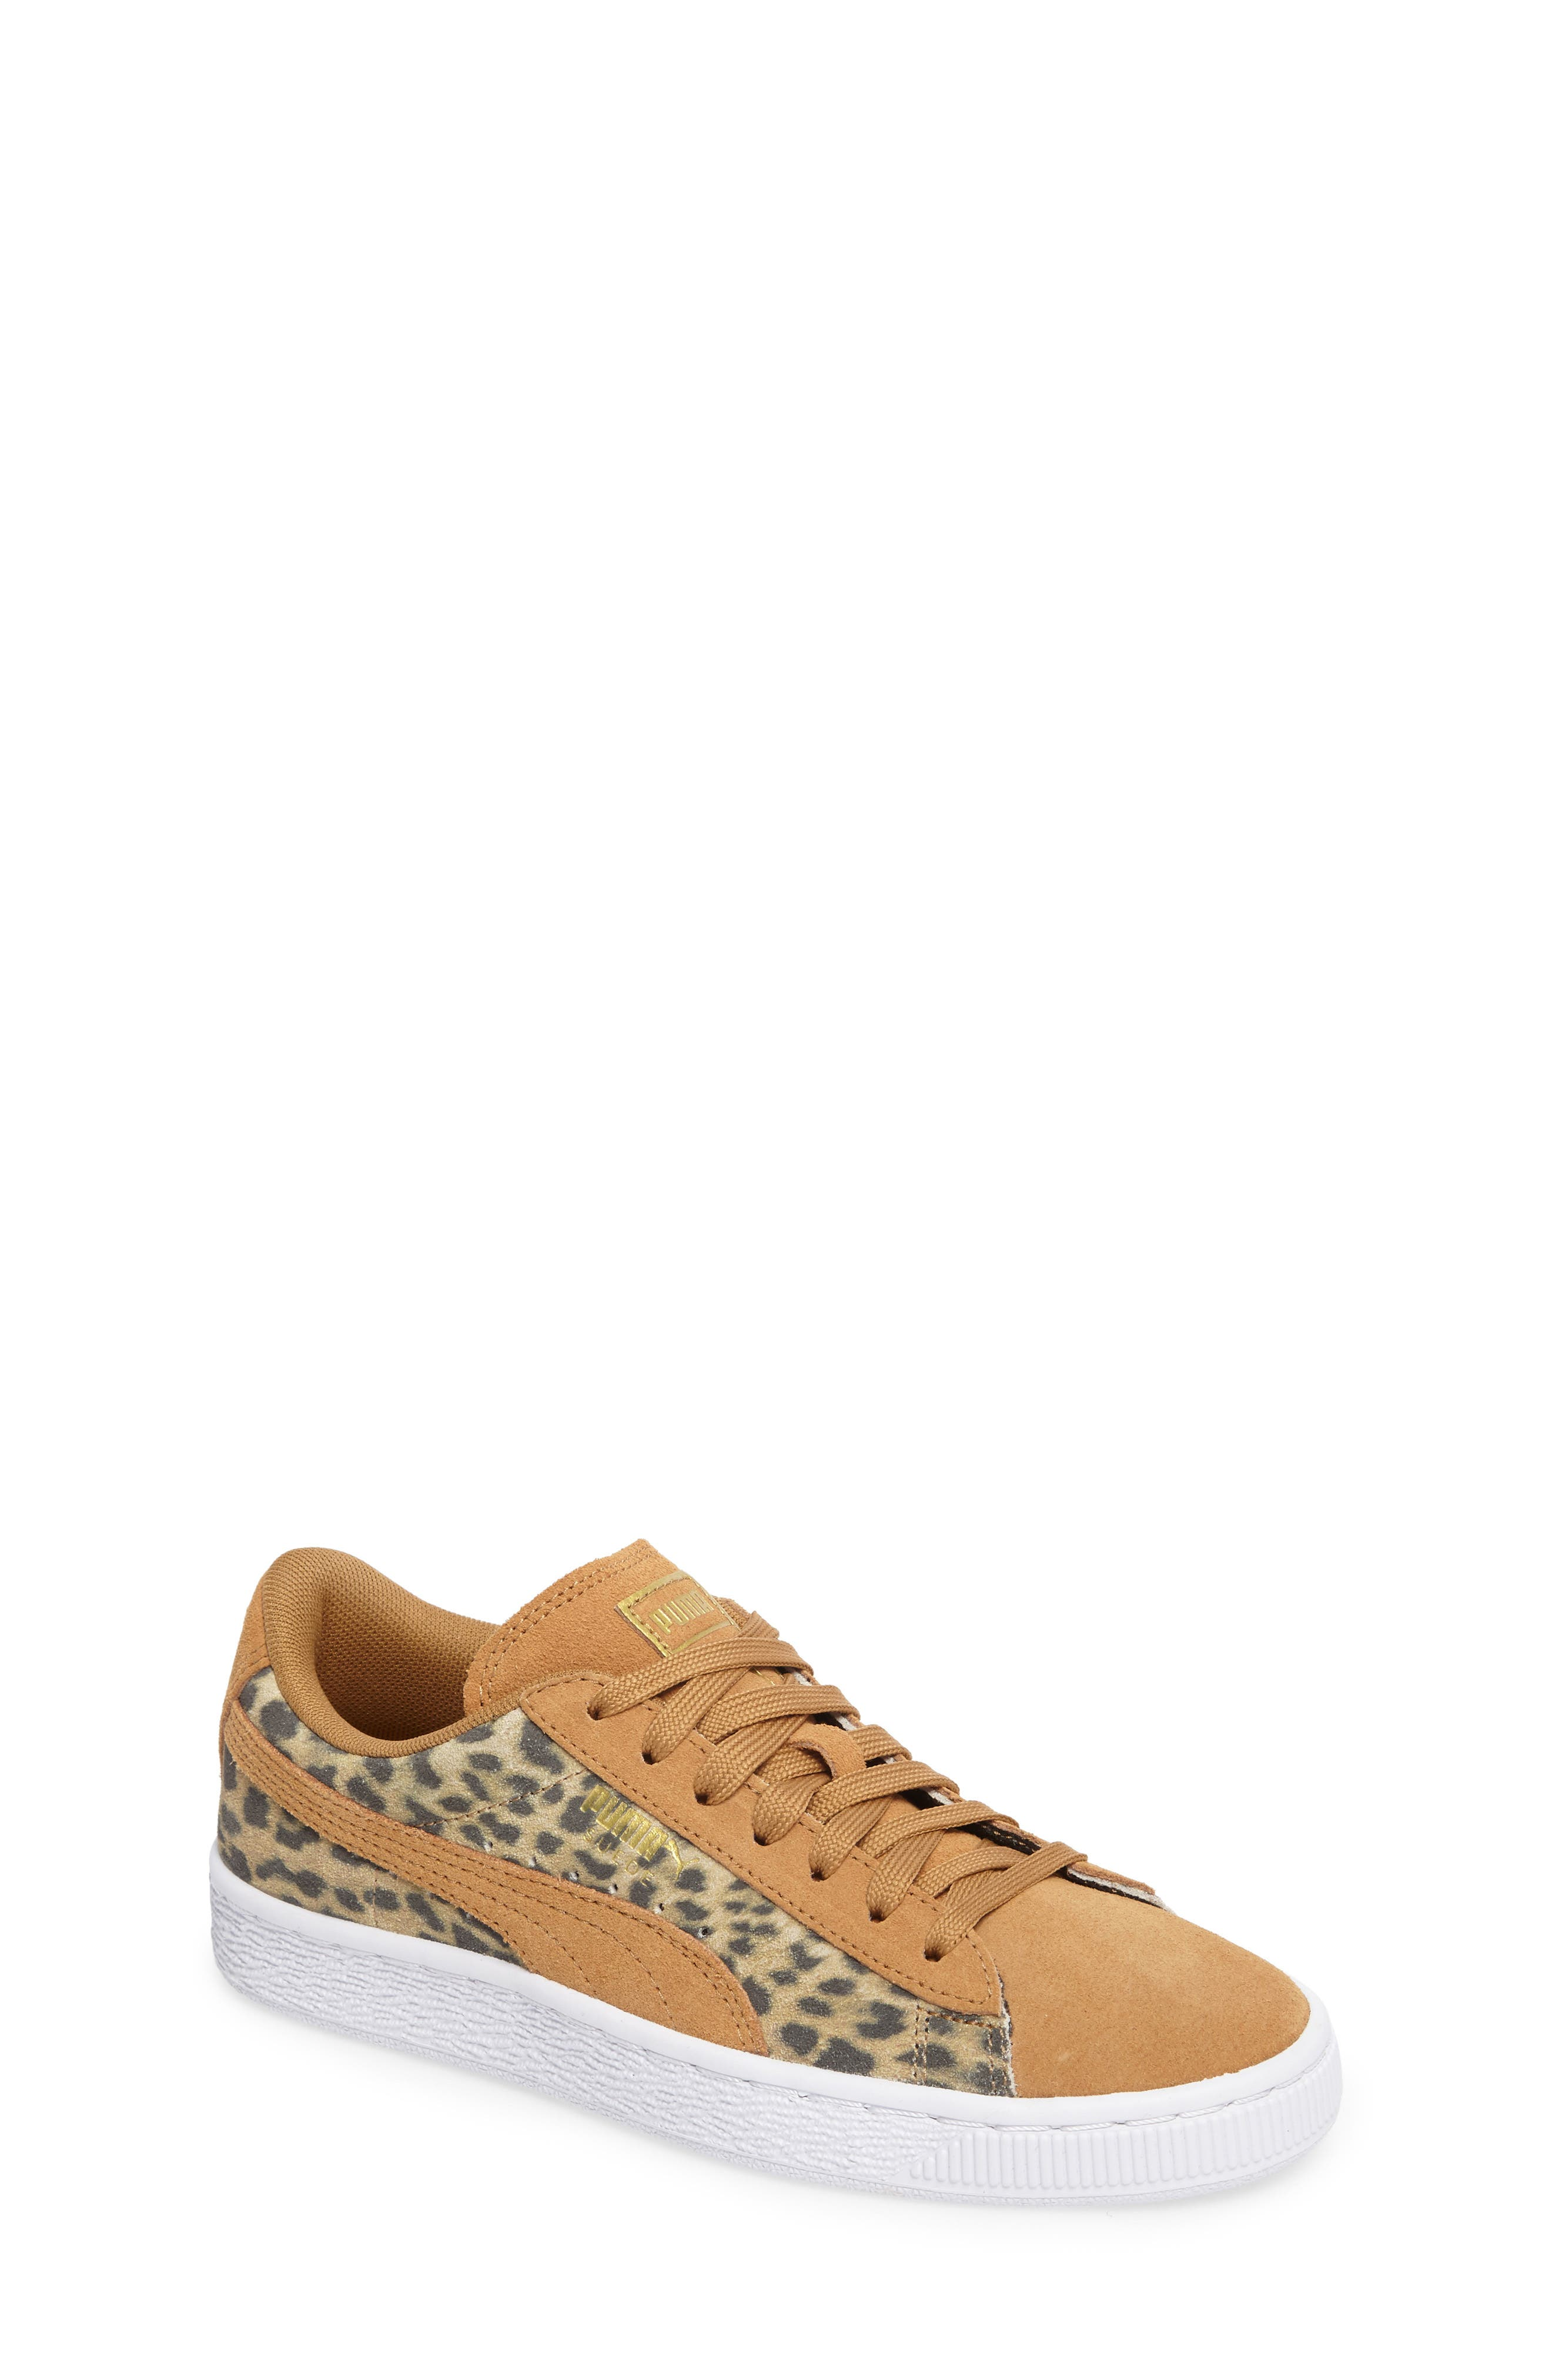 Suede Animal Sneaker,                             Main thumbnail 1, color,                             200